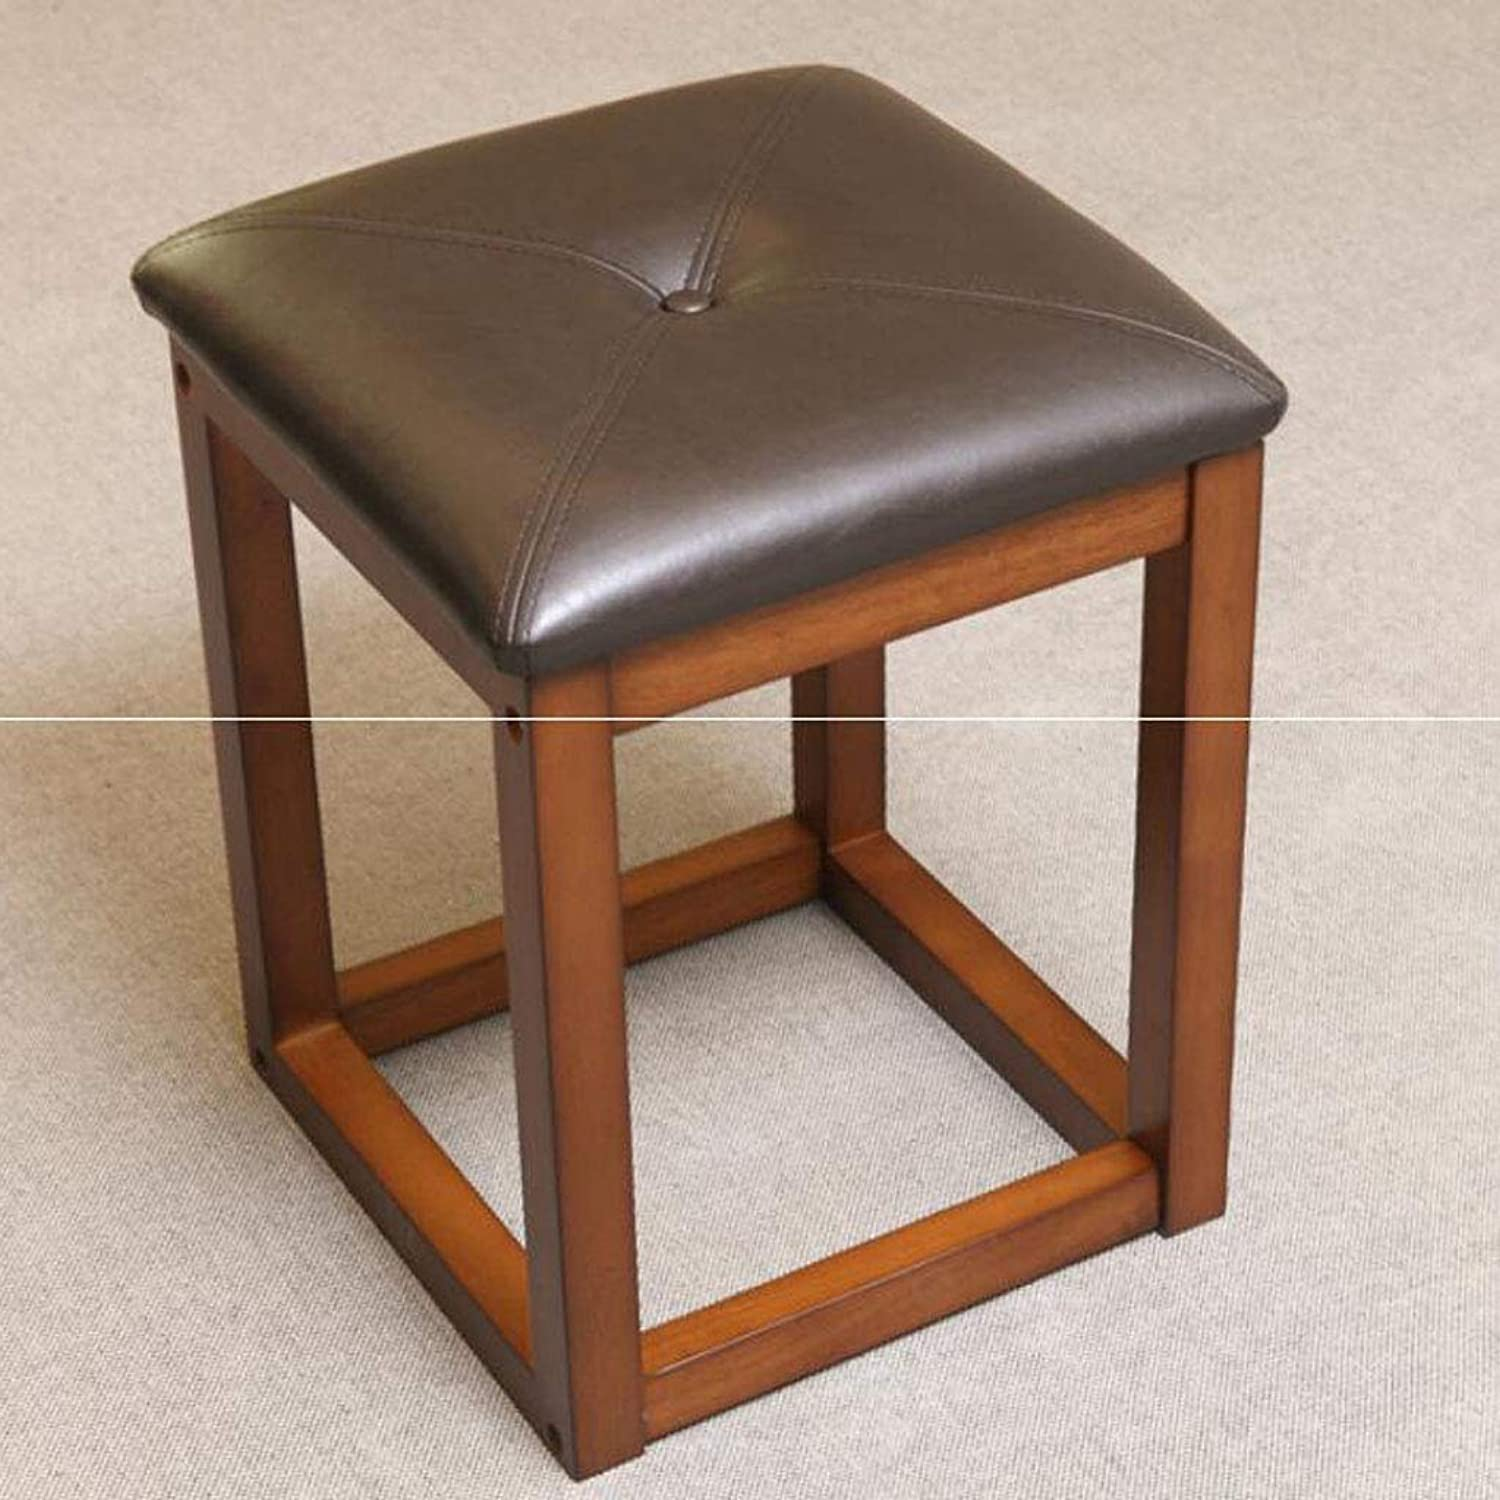 SYFO Household Solid Wood Chair, All Solid Wood Dressing Stool, Table Square Stool, Creative shoes Bench Stool